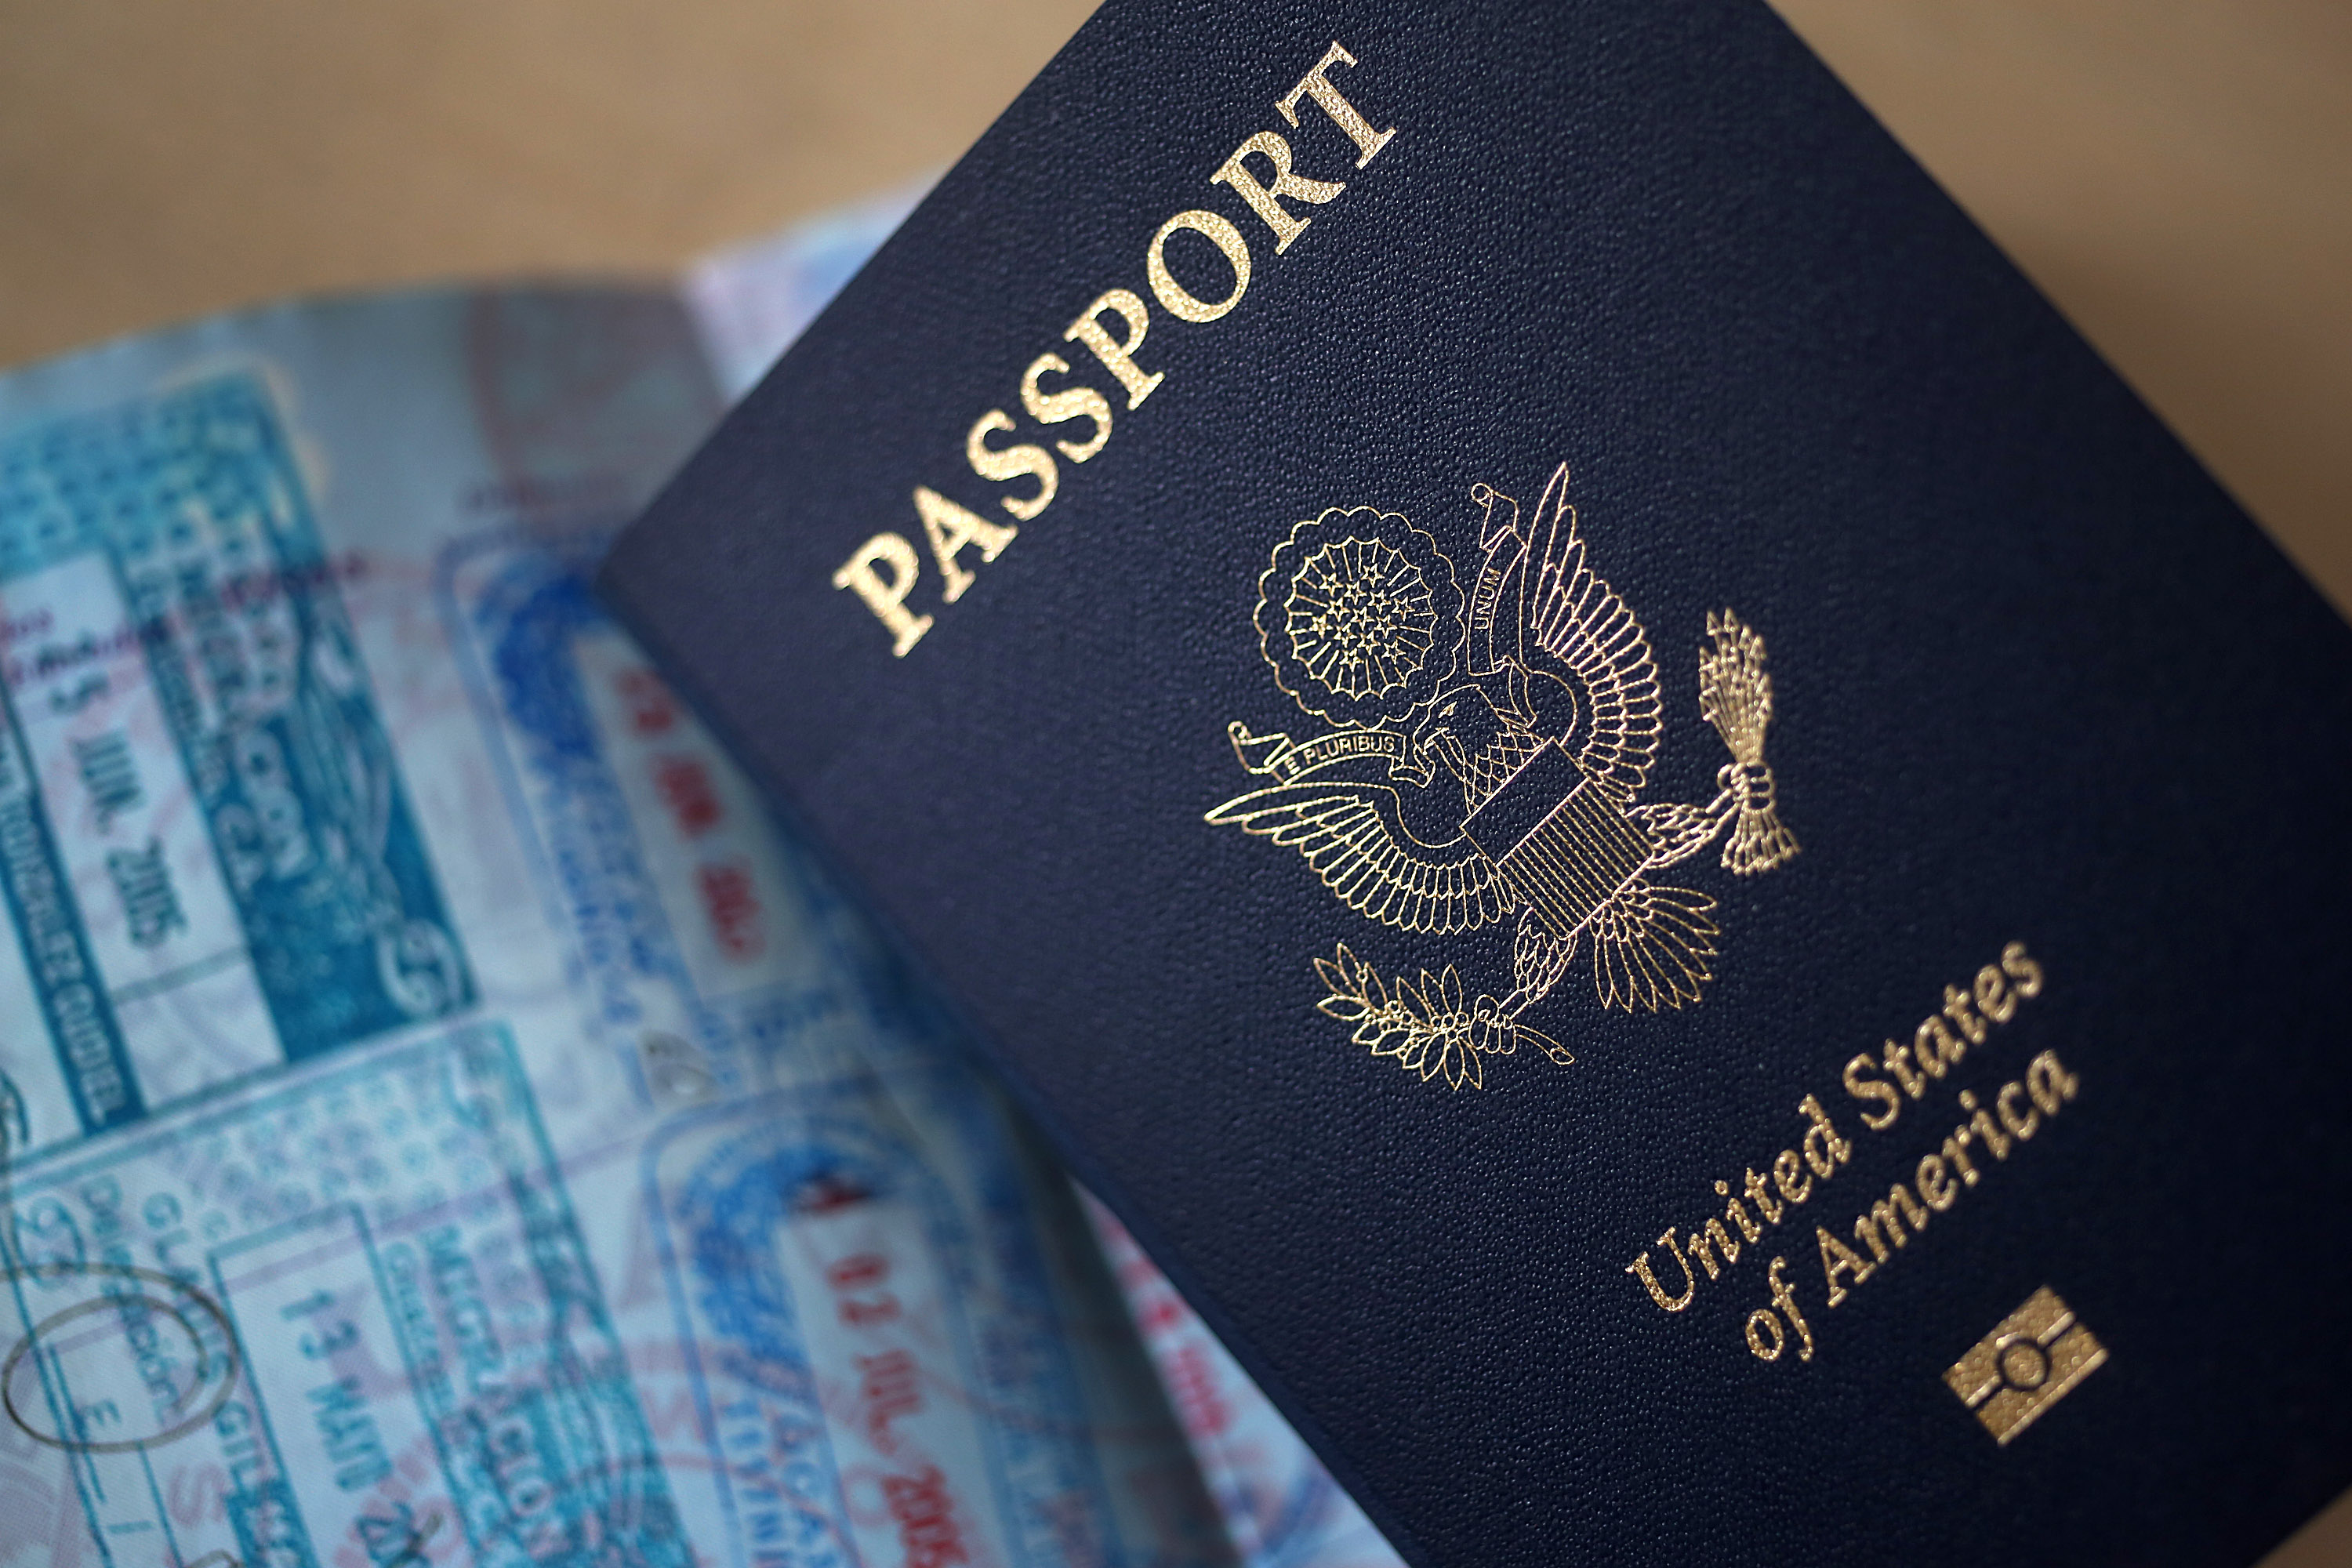 Views Of U.S. Passports As Obama Deportation Deferrals Likely to Be Blocked